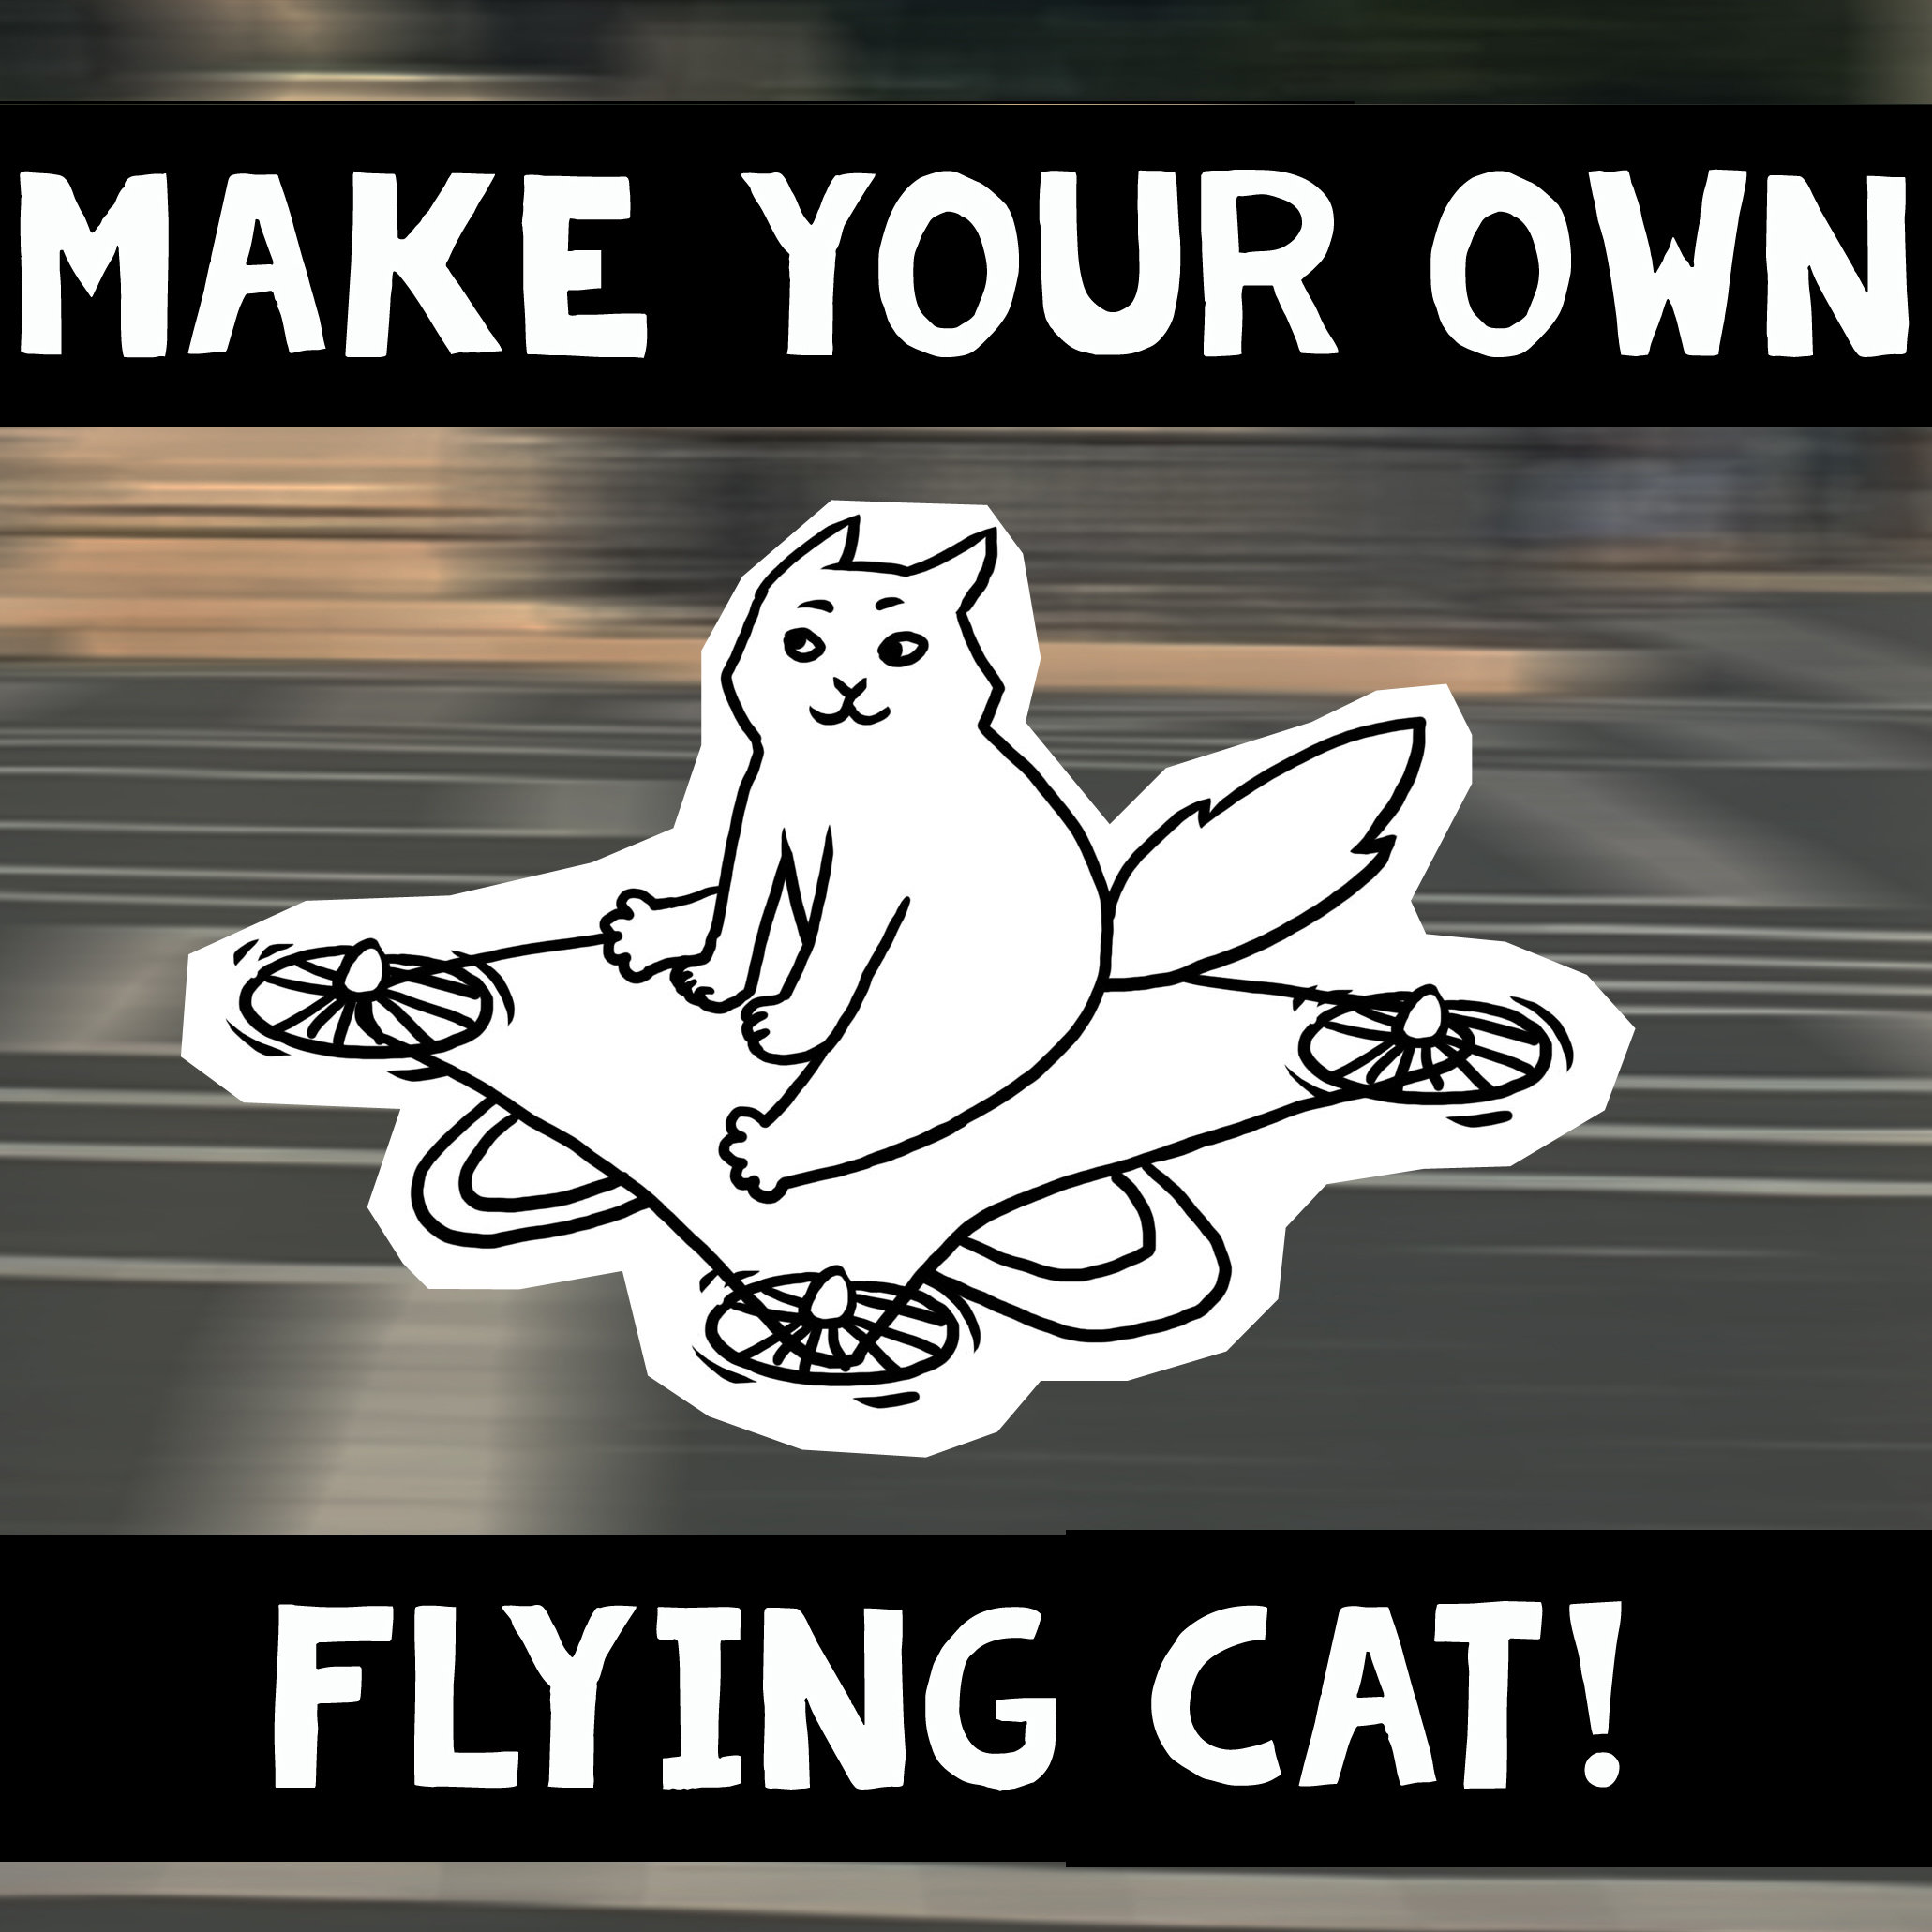 Make your own flying cat 00795